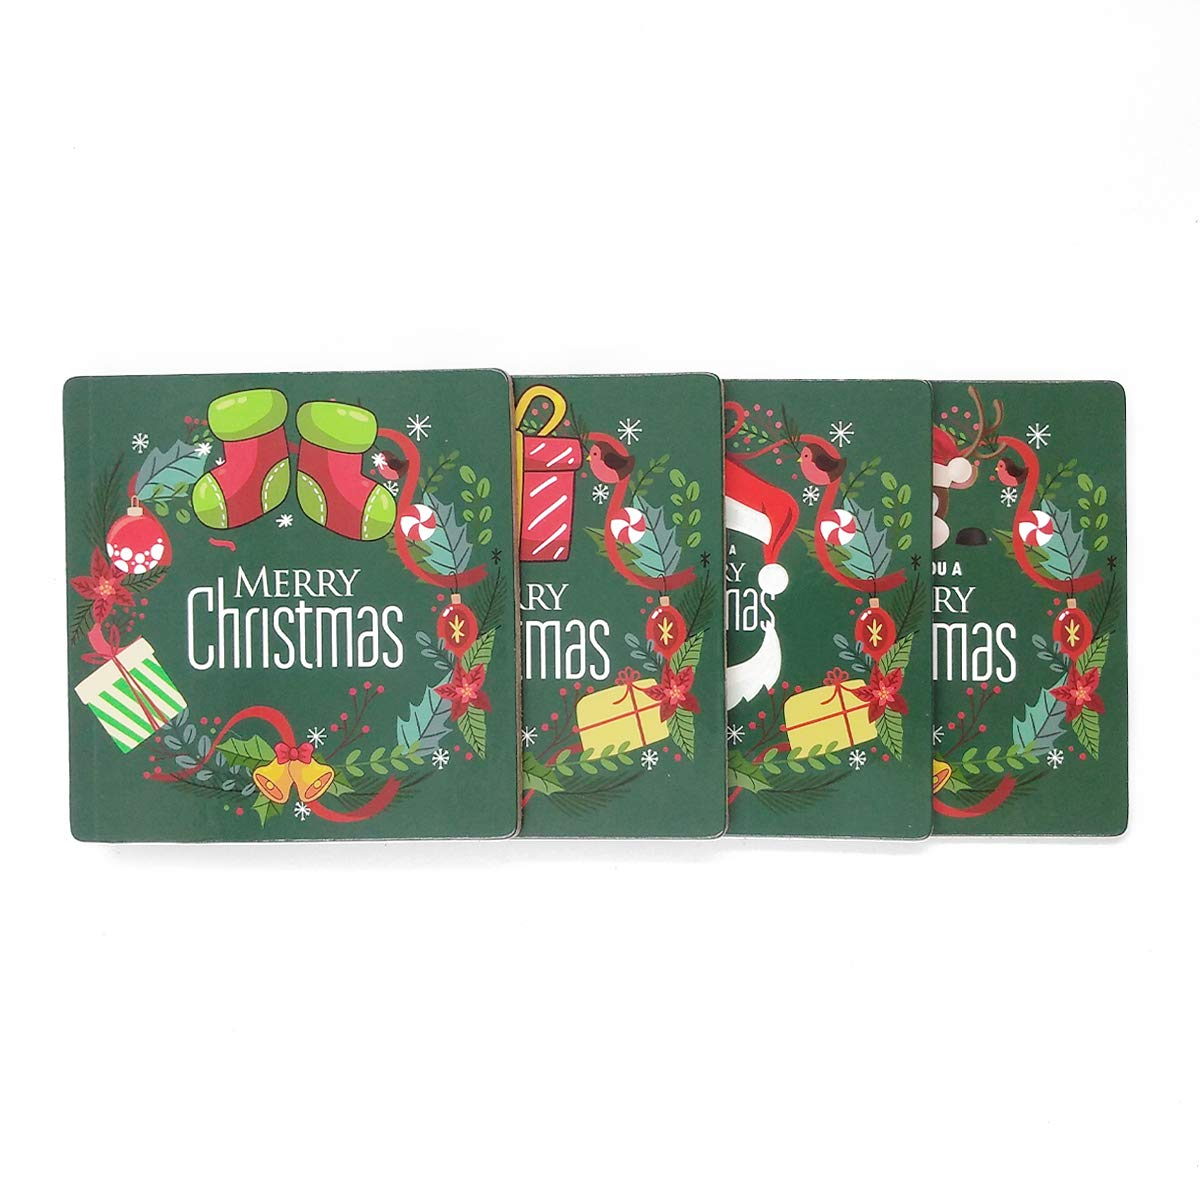 Set of 4 Prevent Furniture from Dirty and Scratched Coaster For Drinks With Vibrant Colors And Cork Backing Christmas Coasters